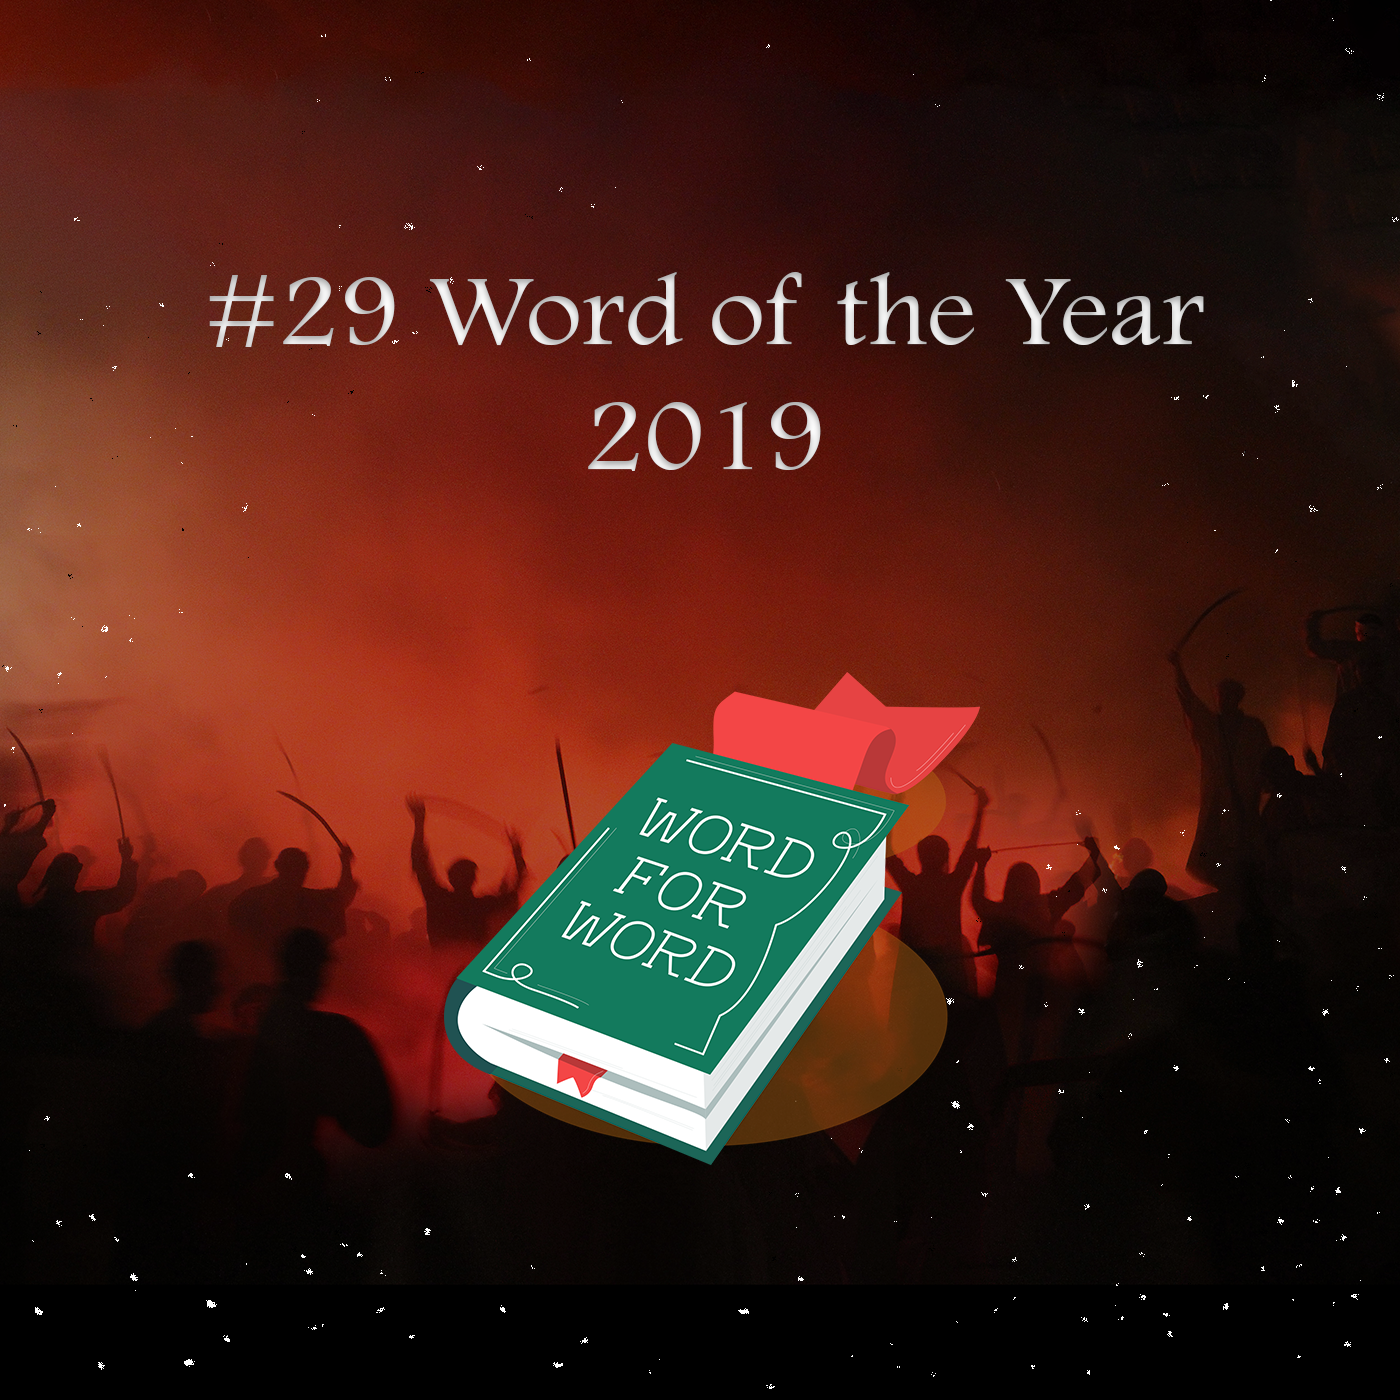 Silhouette of crowd holding swords and text: #29 Word of the Year 2019